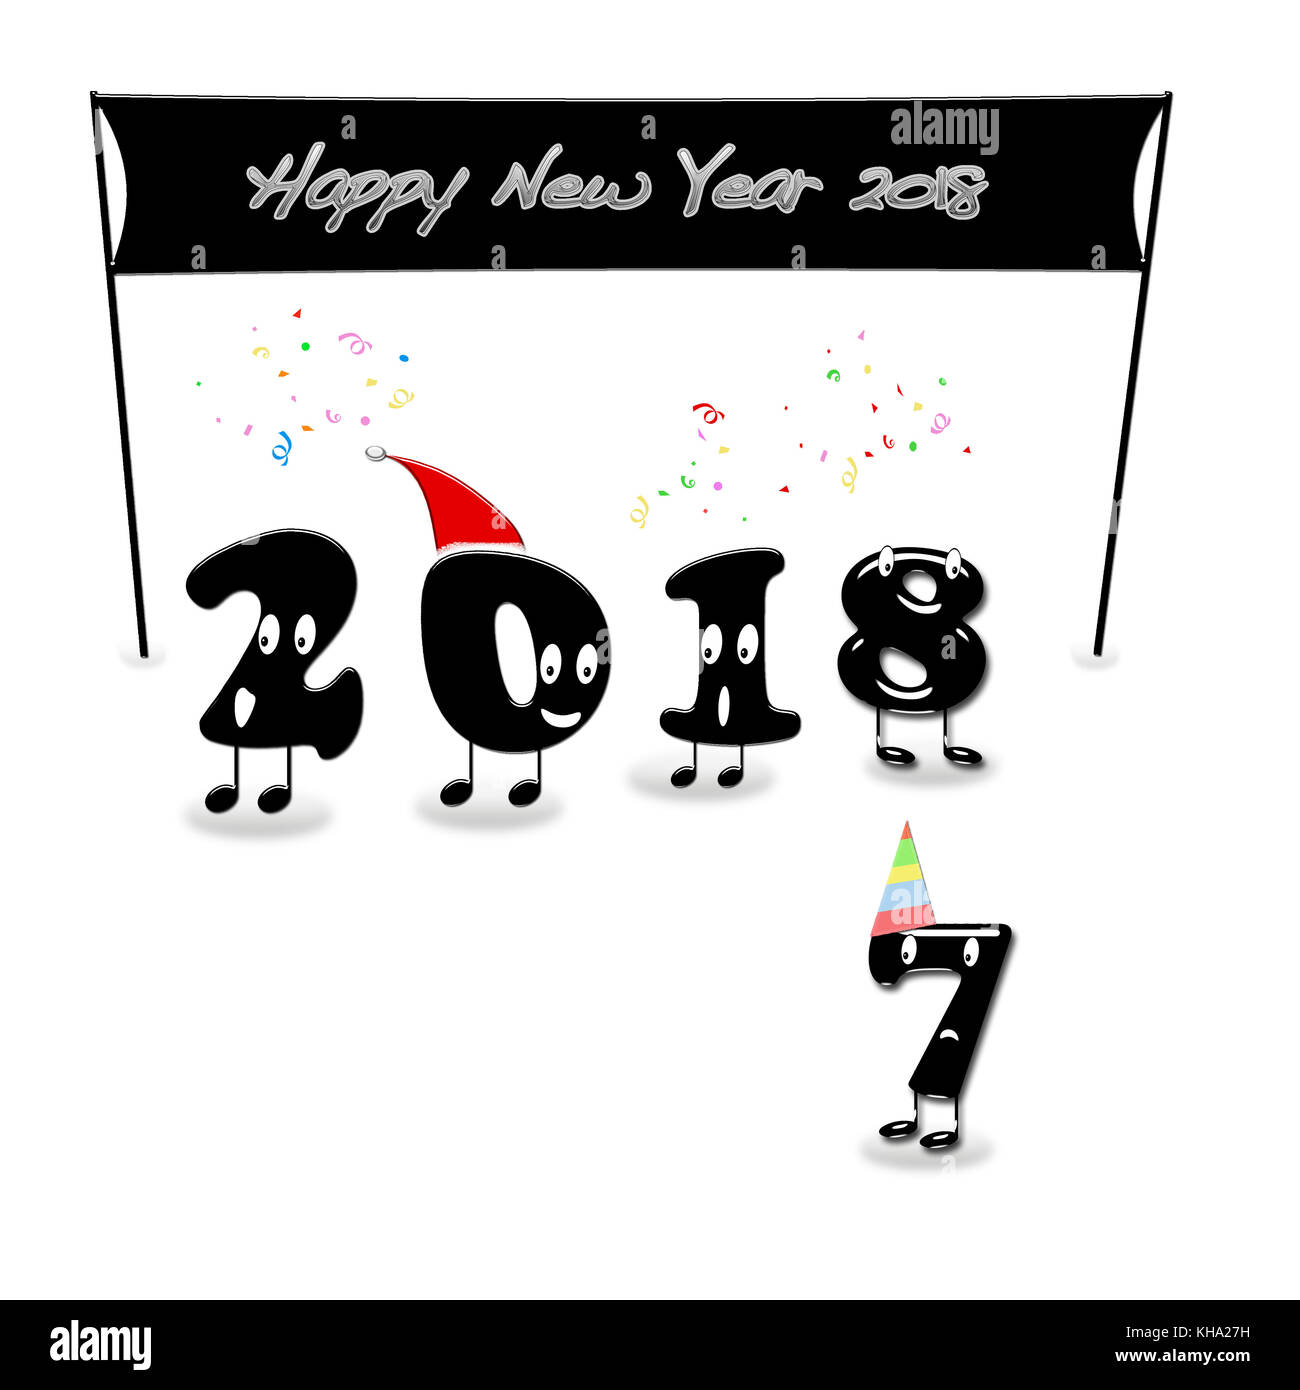 cartoon of 2018 numerals with text happy new year 3d rendering stock image